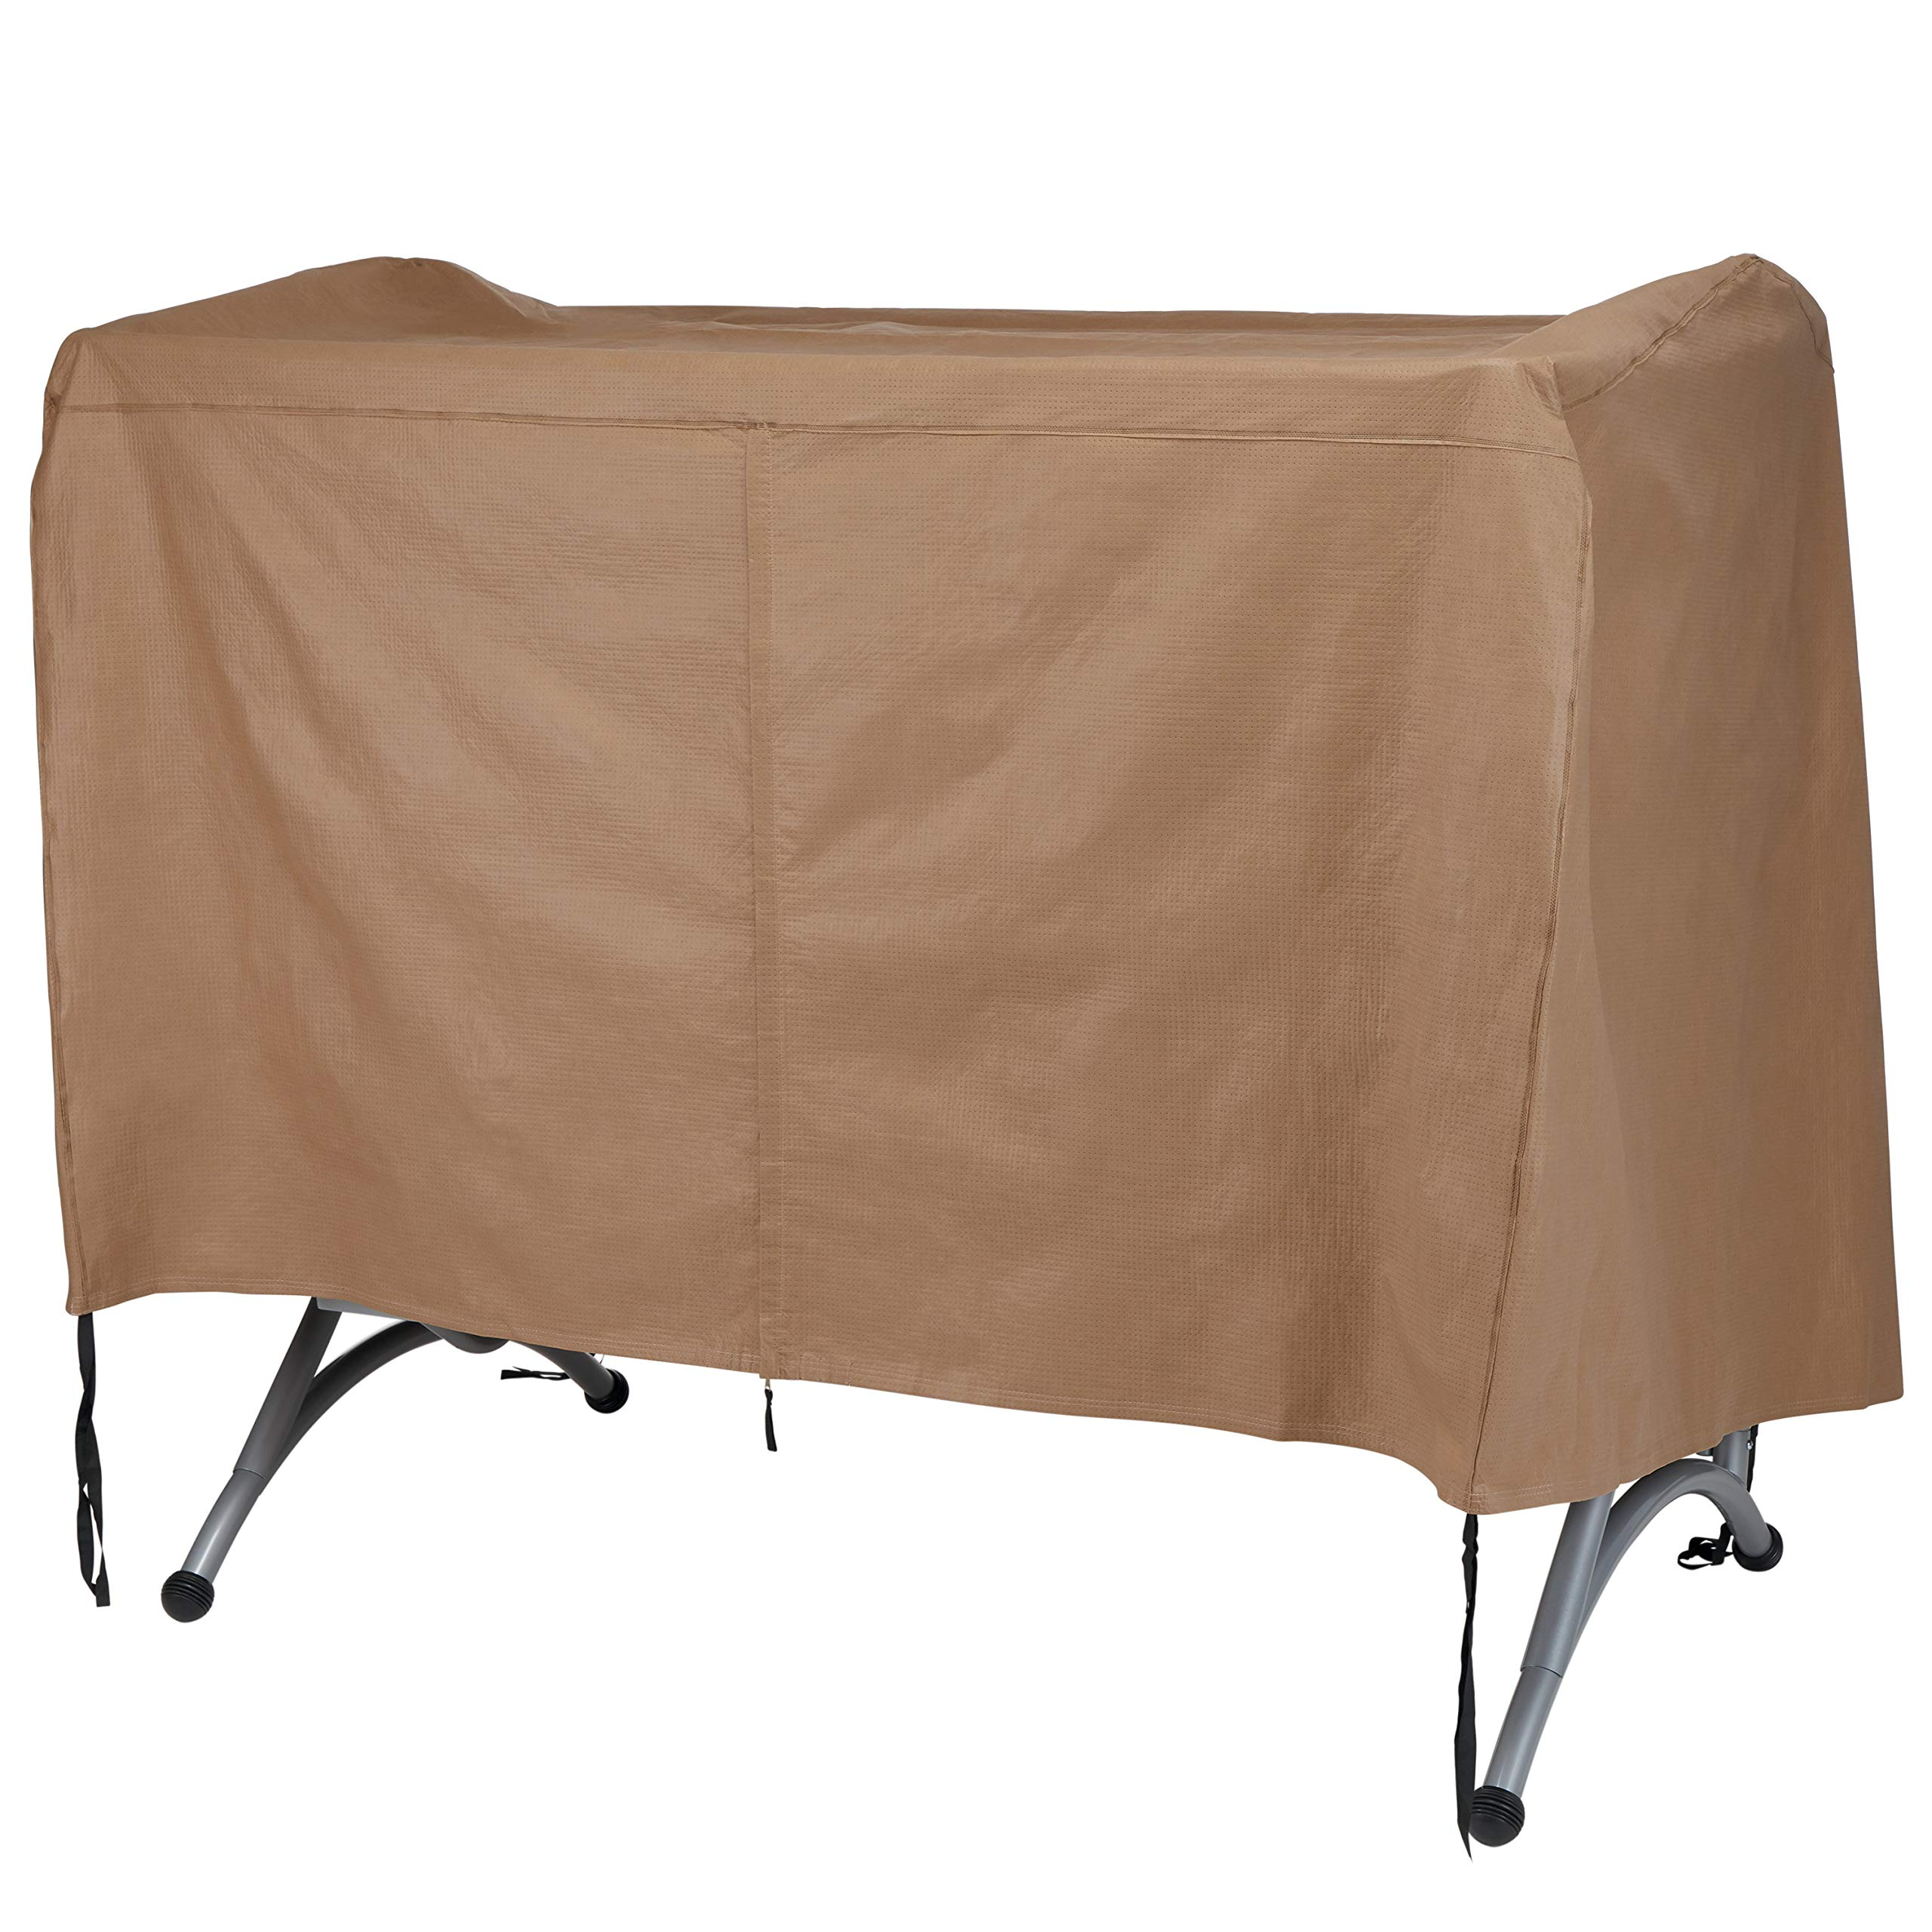 Duck Covers Essential 90'' Canopy Swing Cover